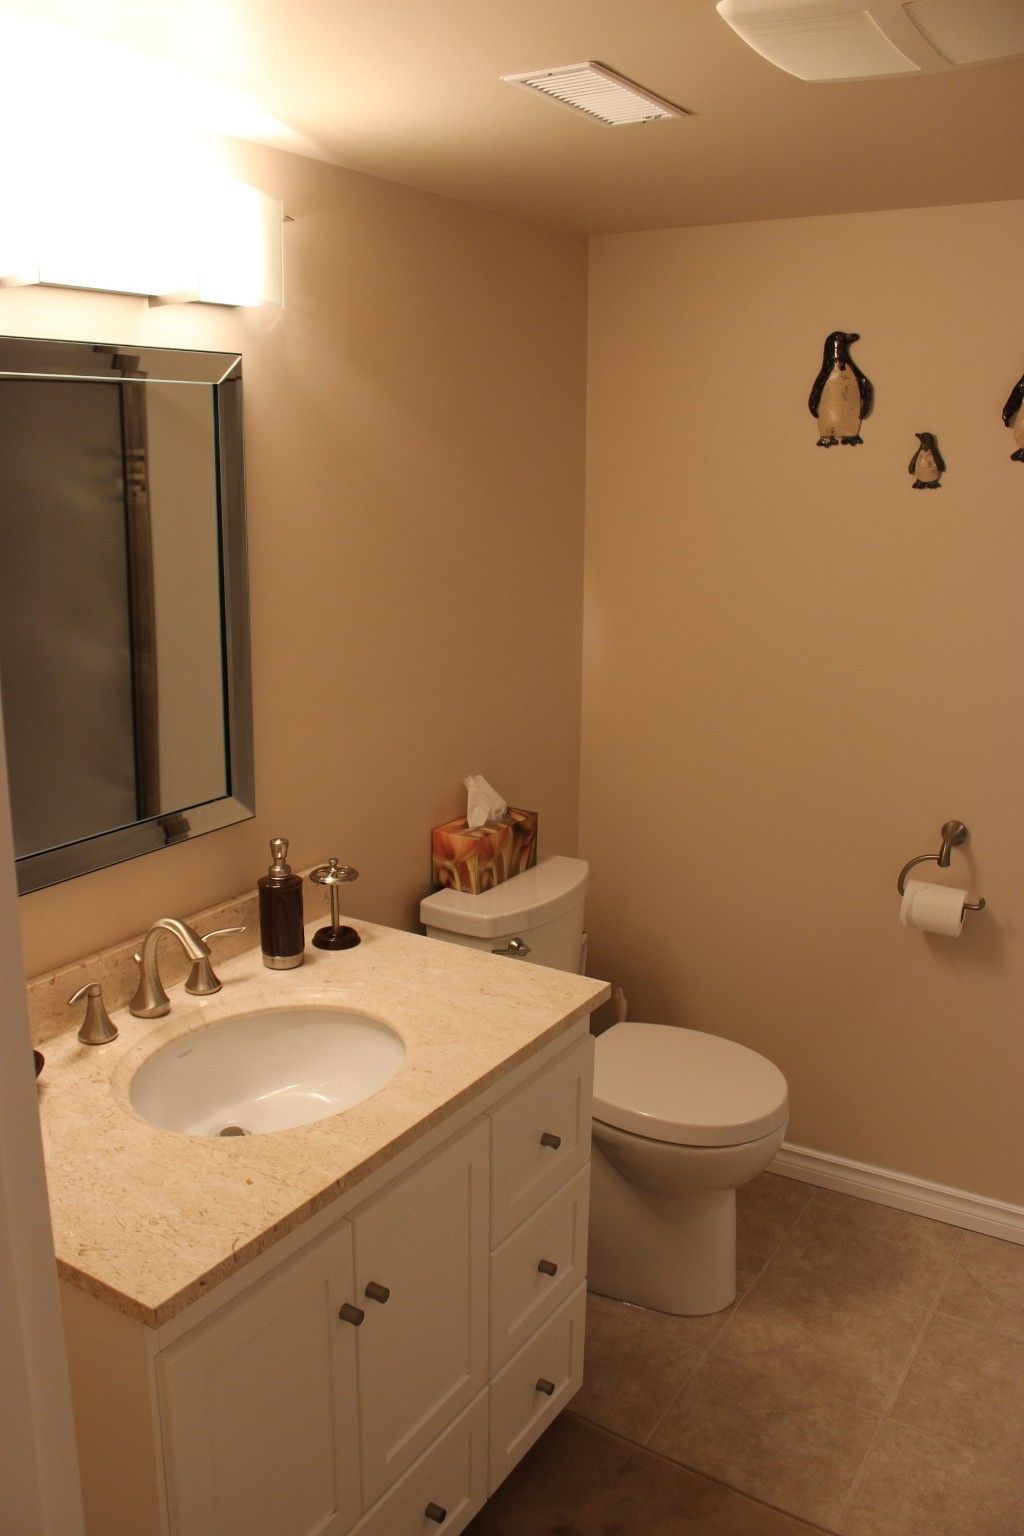 Photo 19: Photos: 1523 Robinson Crescent in Kamloops: South Kamloops House for sale : MLS®# 128448